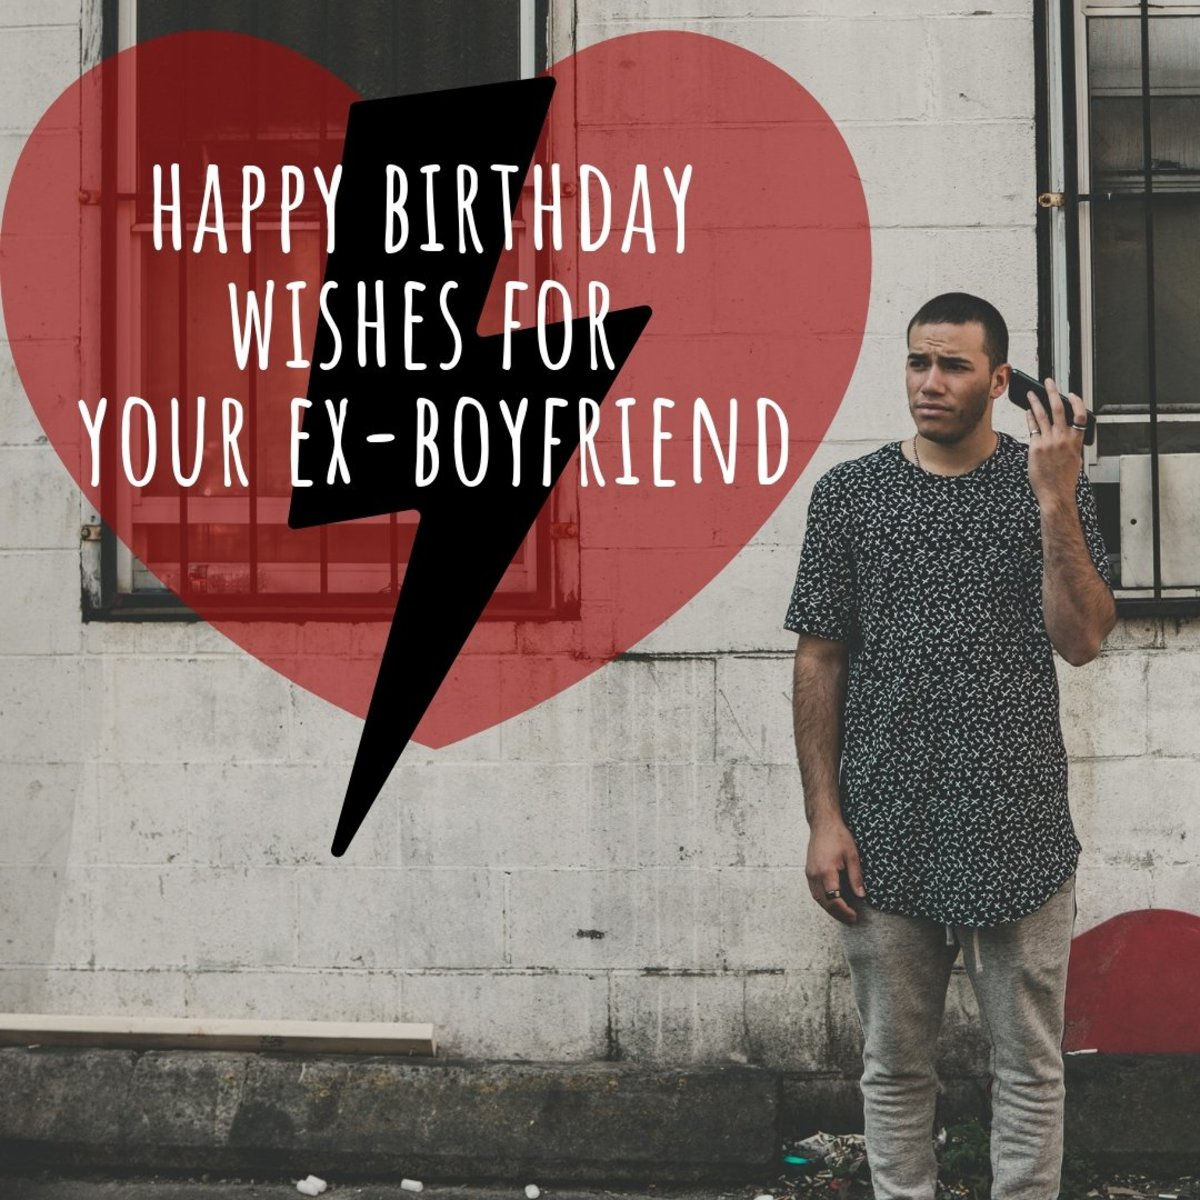 Still good friends with your ex-boyfriend? Read these warm birthday wishes and write your own little heartfelt birthday wish for your ex.